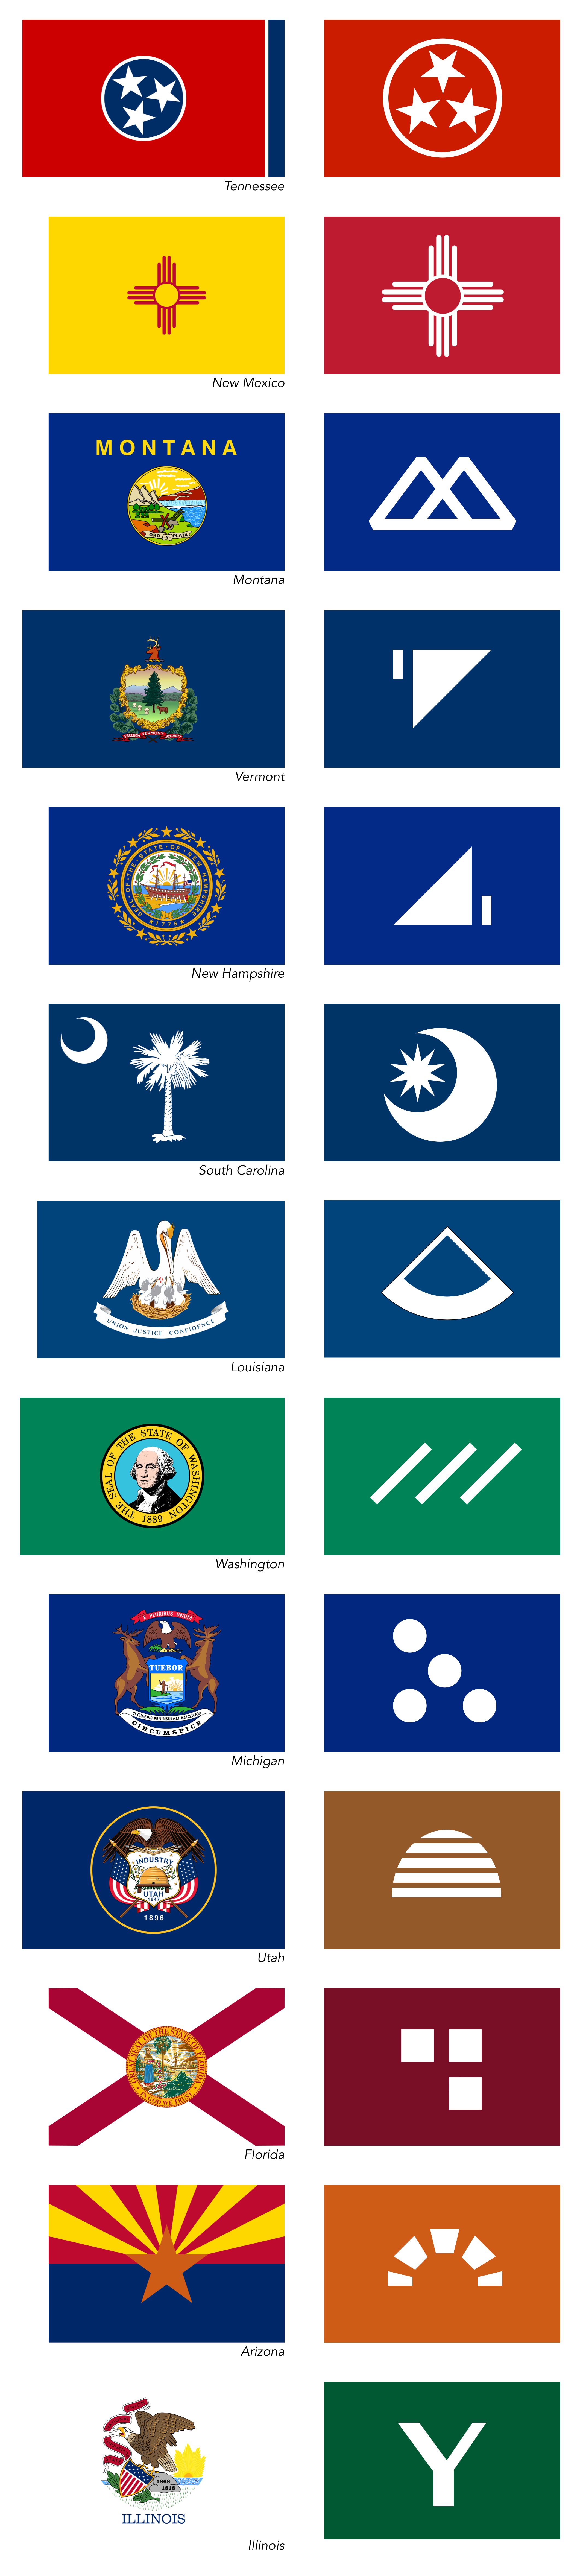 7-flags-us-plus-icons.png